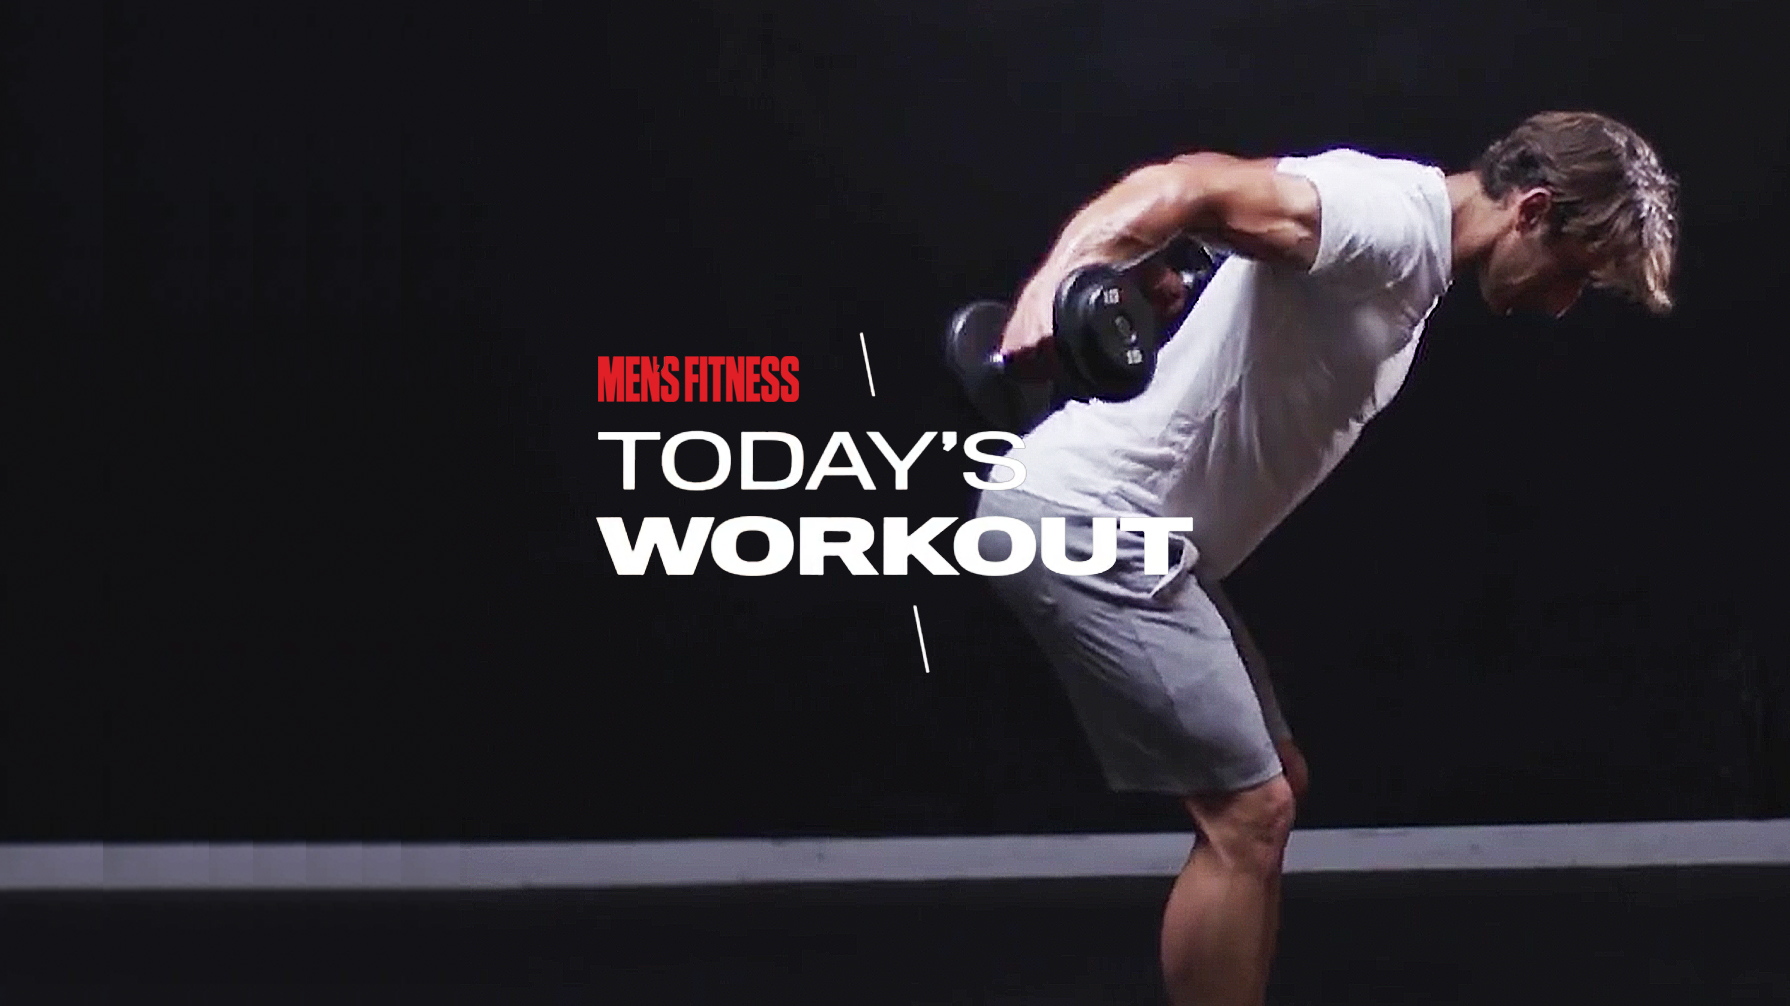 Today's Workout 111: The dumbbell-heavy circuit to pound your chest, arms, and back